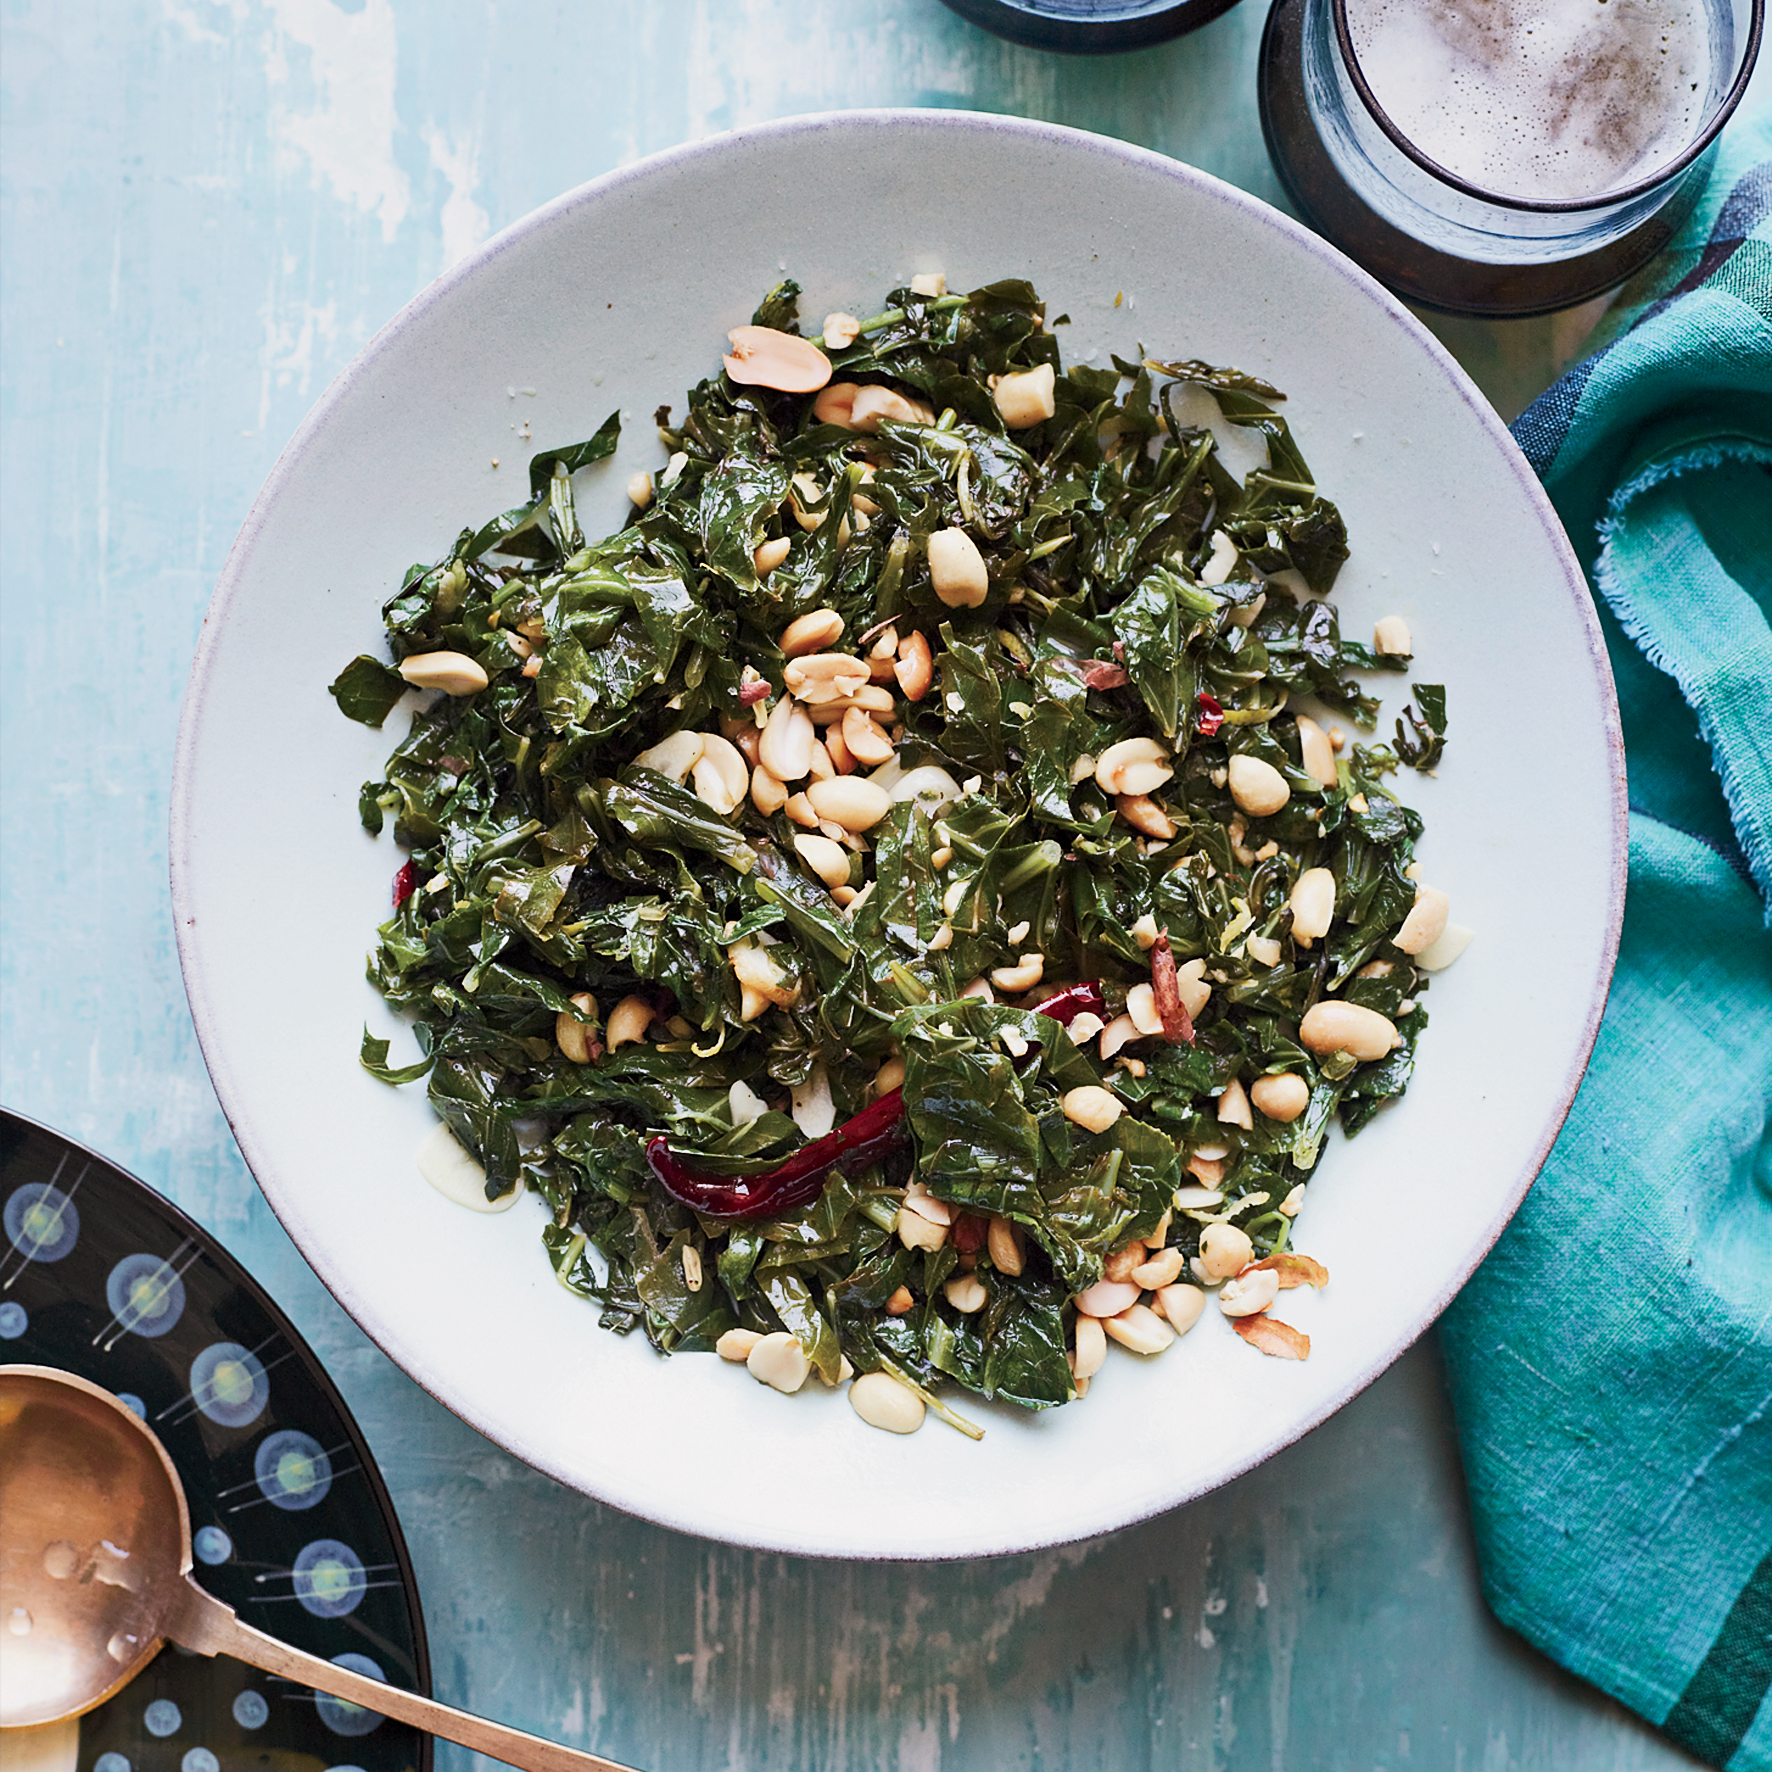 original-201311-r-sauteed-collard-greens-with-roasted-peanuts.jpg